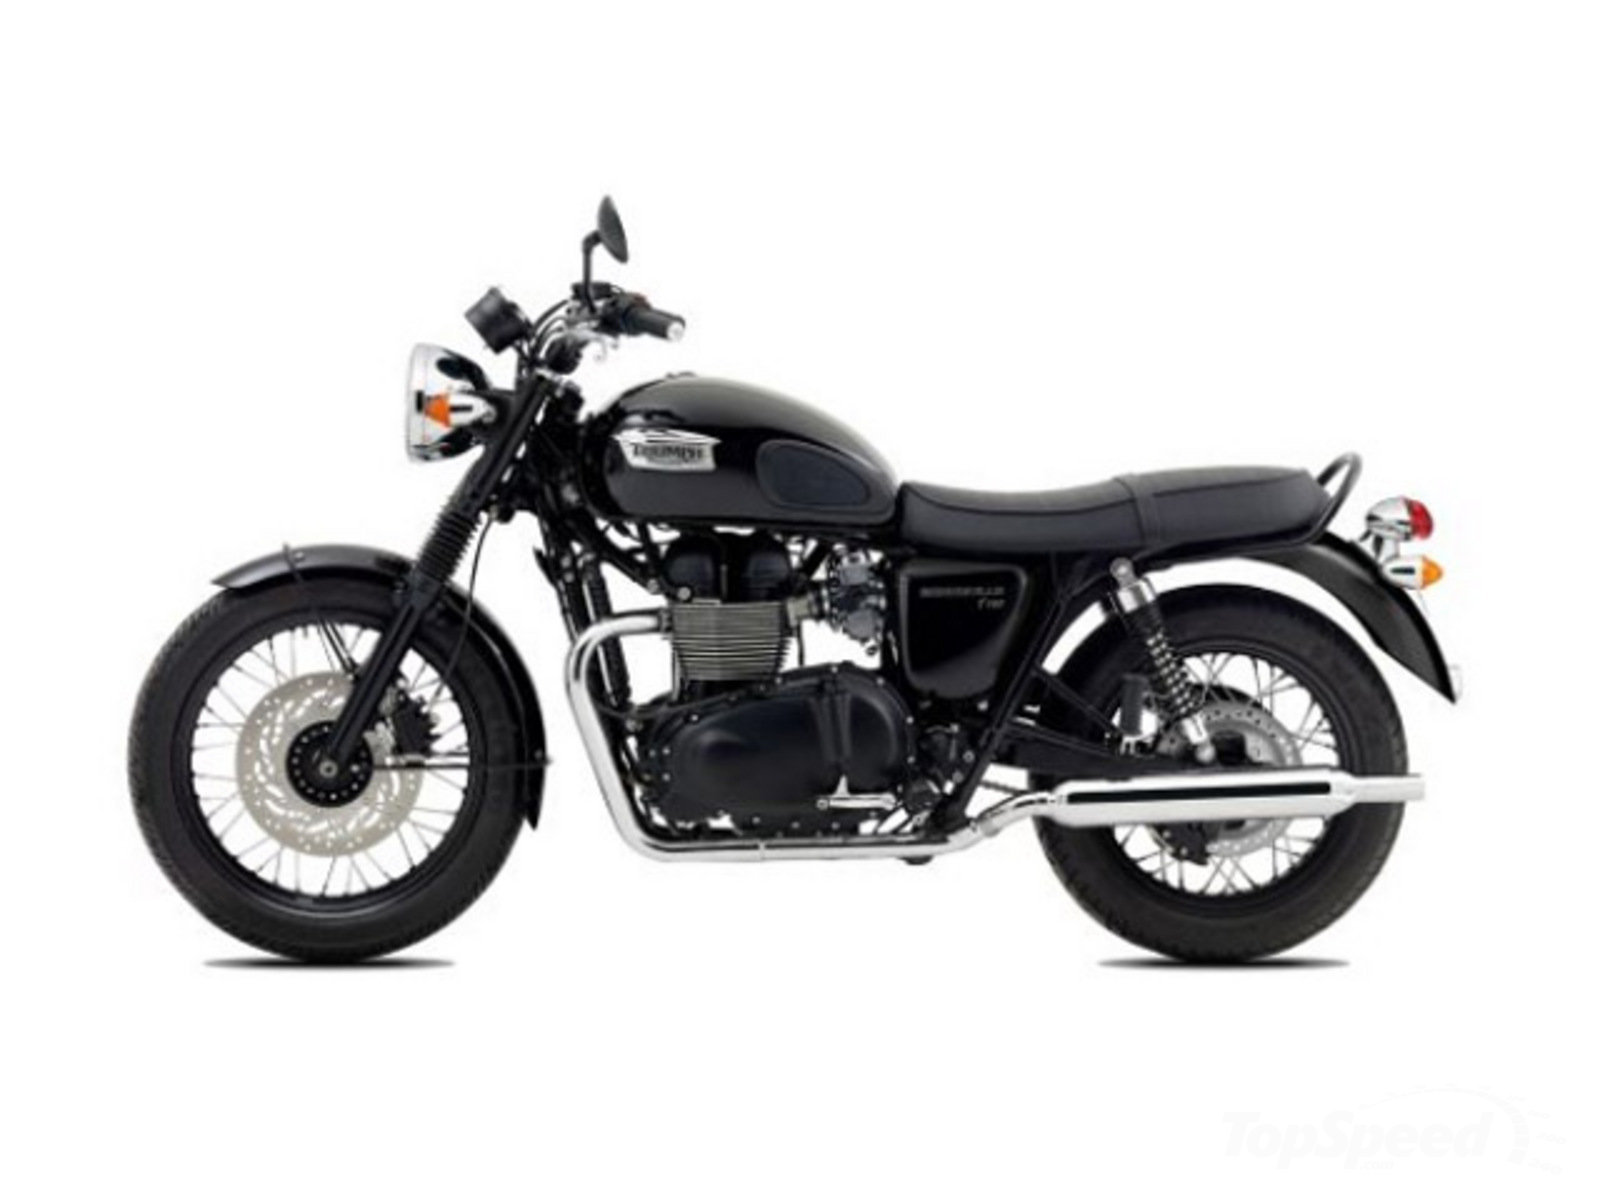 2014 triumph bonneville t100 black review top speed. Black Bedroom Furniture Sets. Home Design Ideas